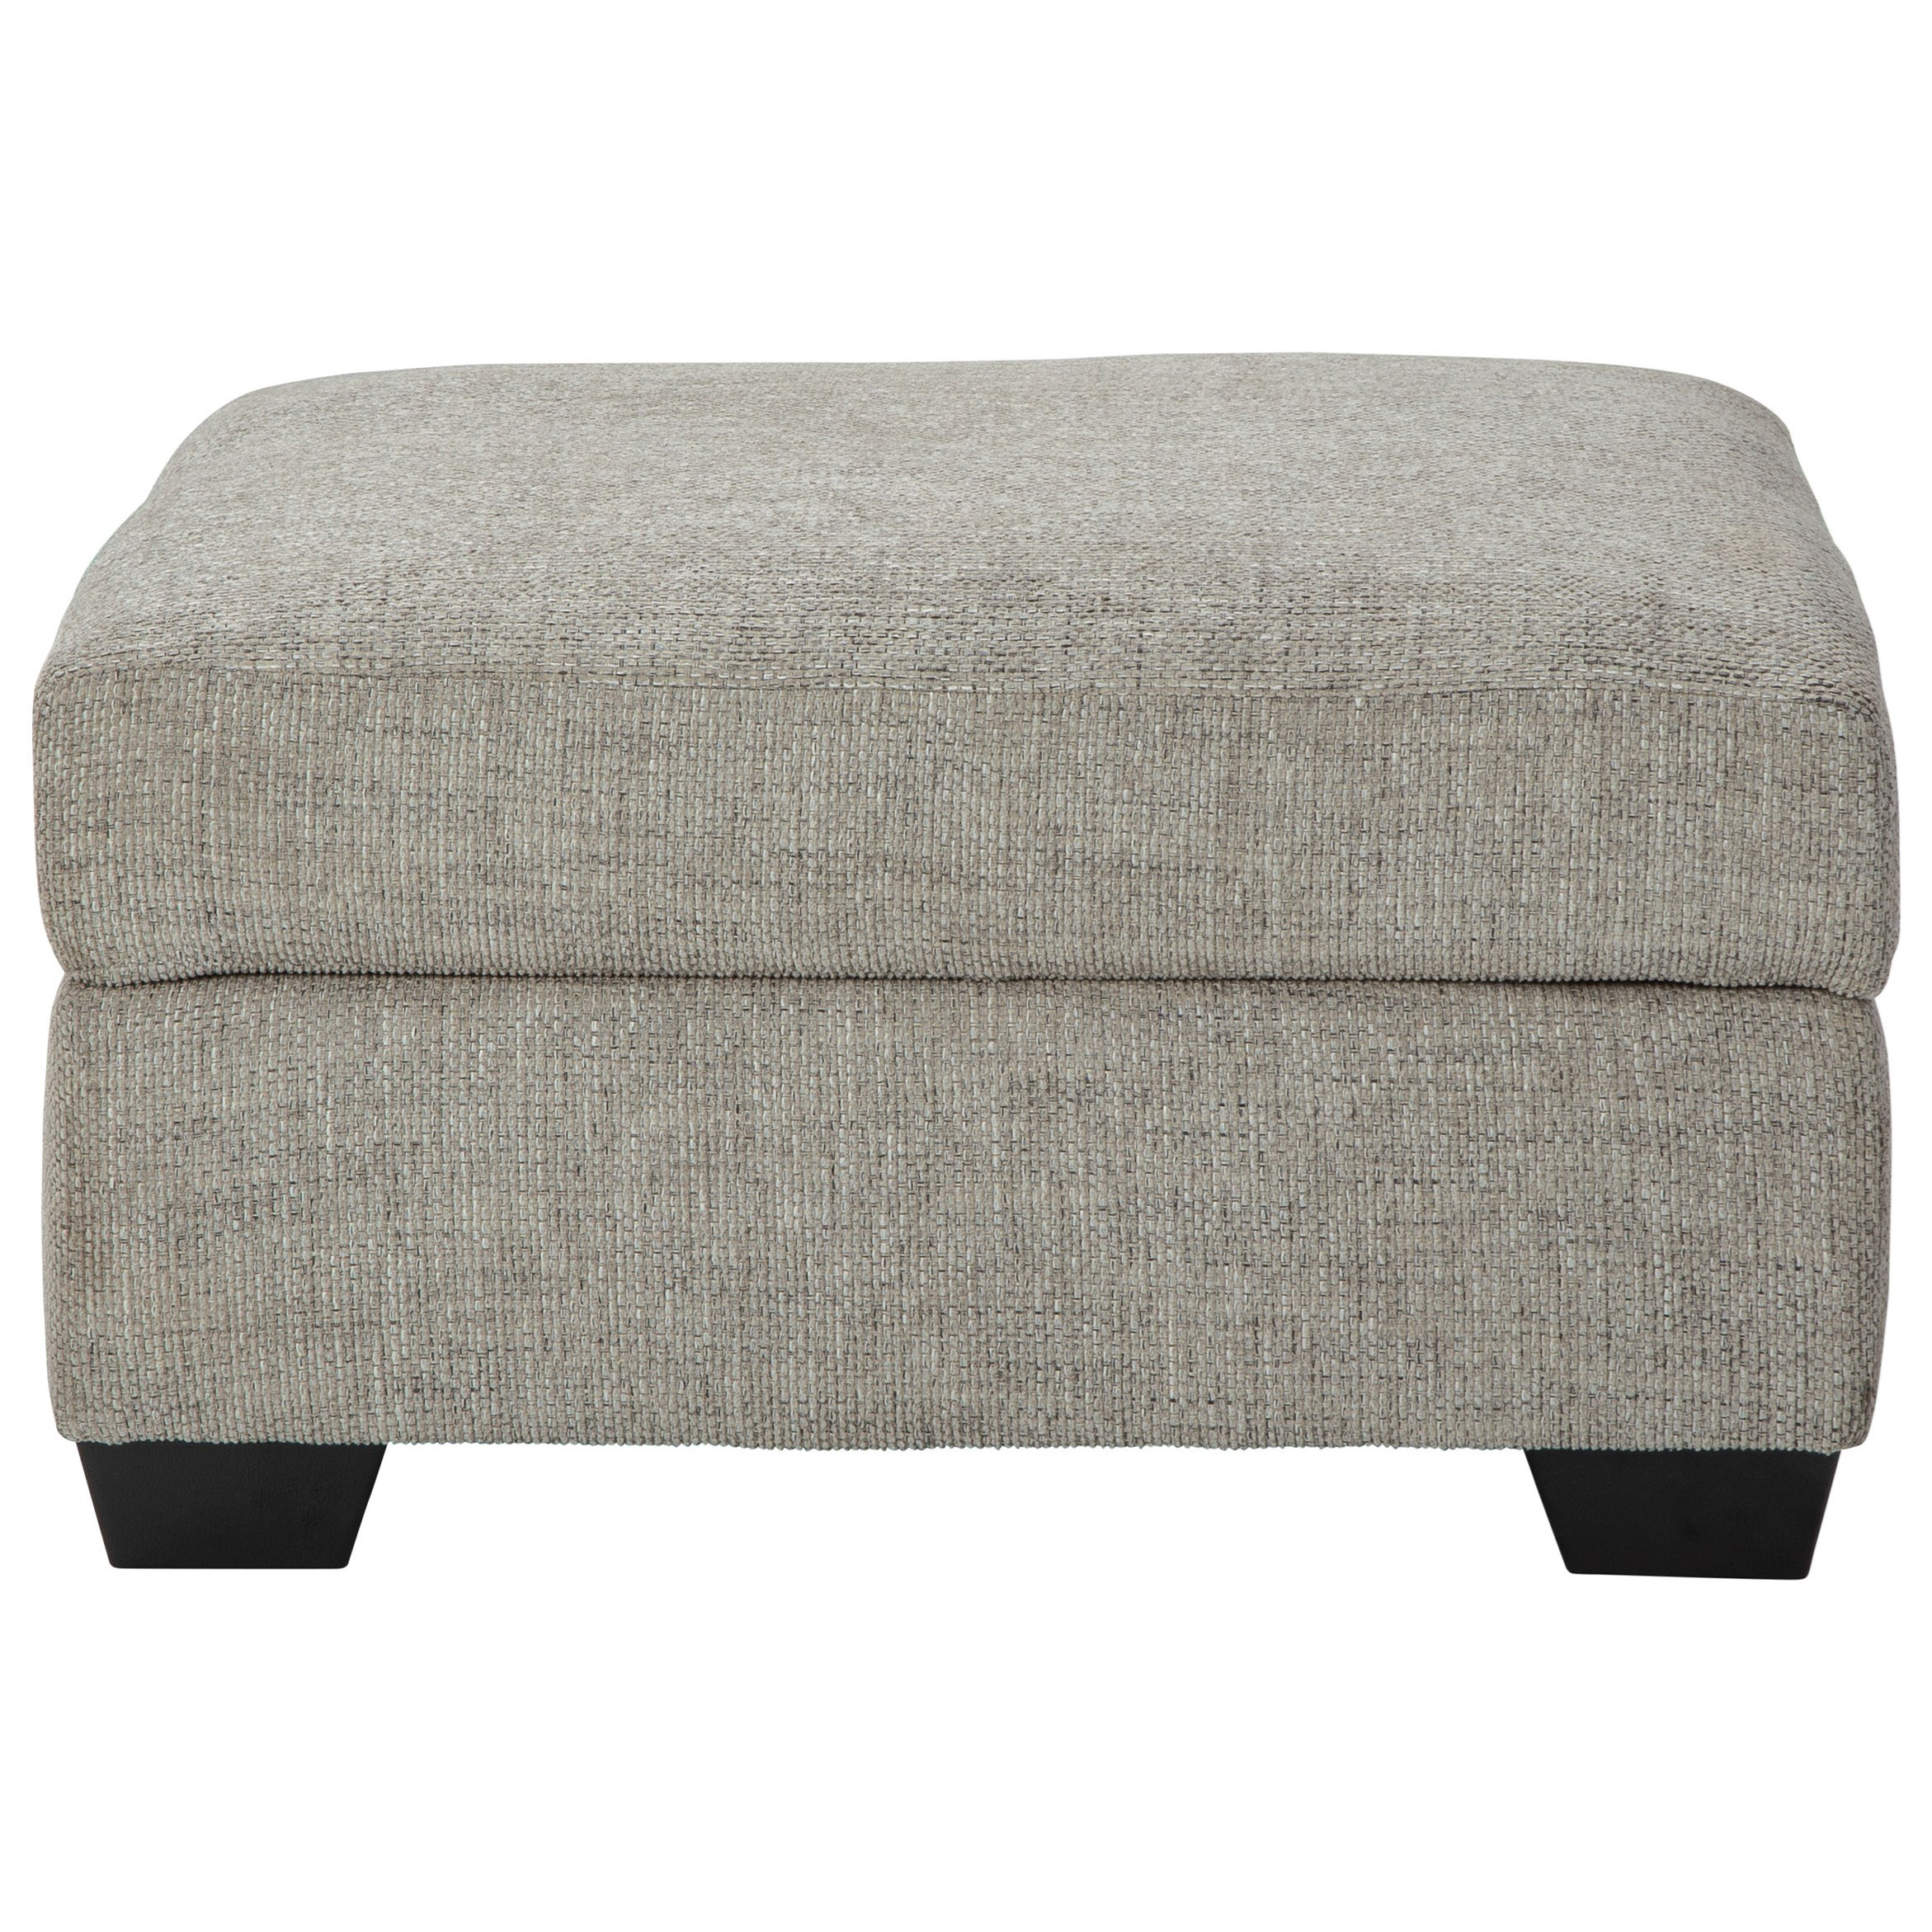 Megginson Ottoman with Storage by Benchcraft at Beck's Furniture